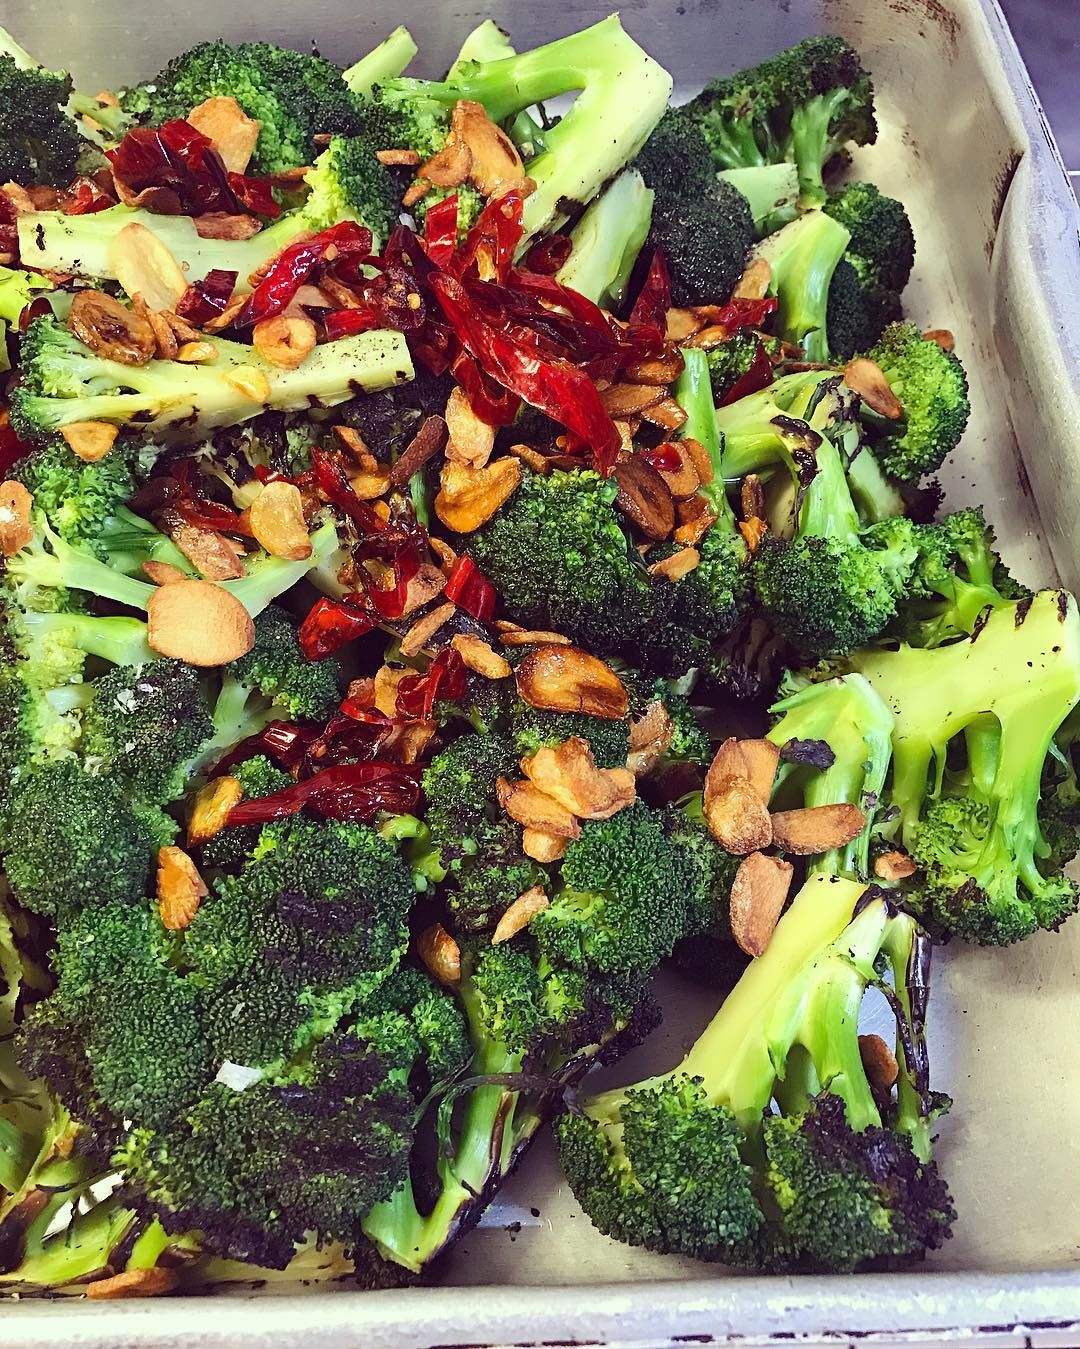 The Old Broccoli With Chilli And Garlic At Ottolenghibelgravia